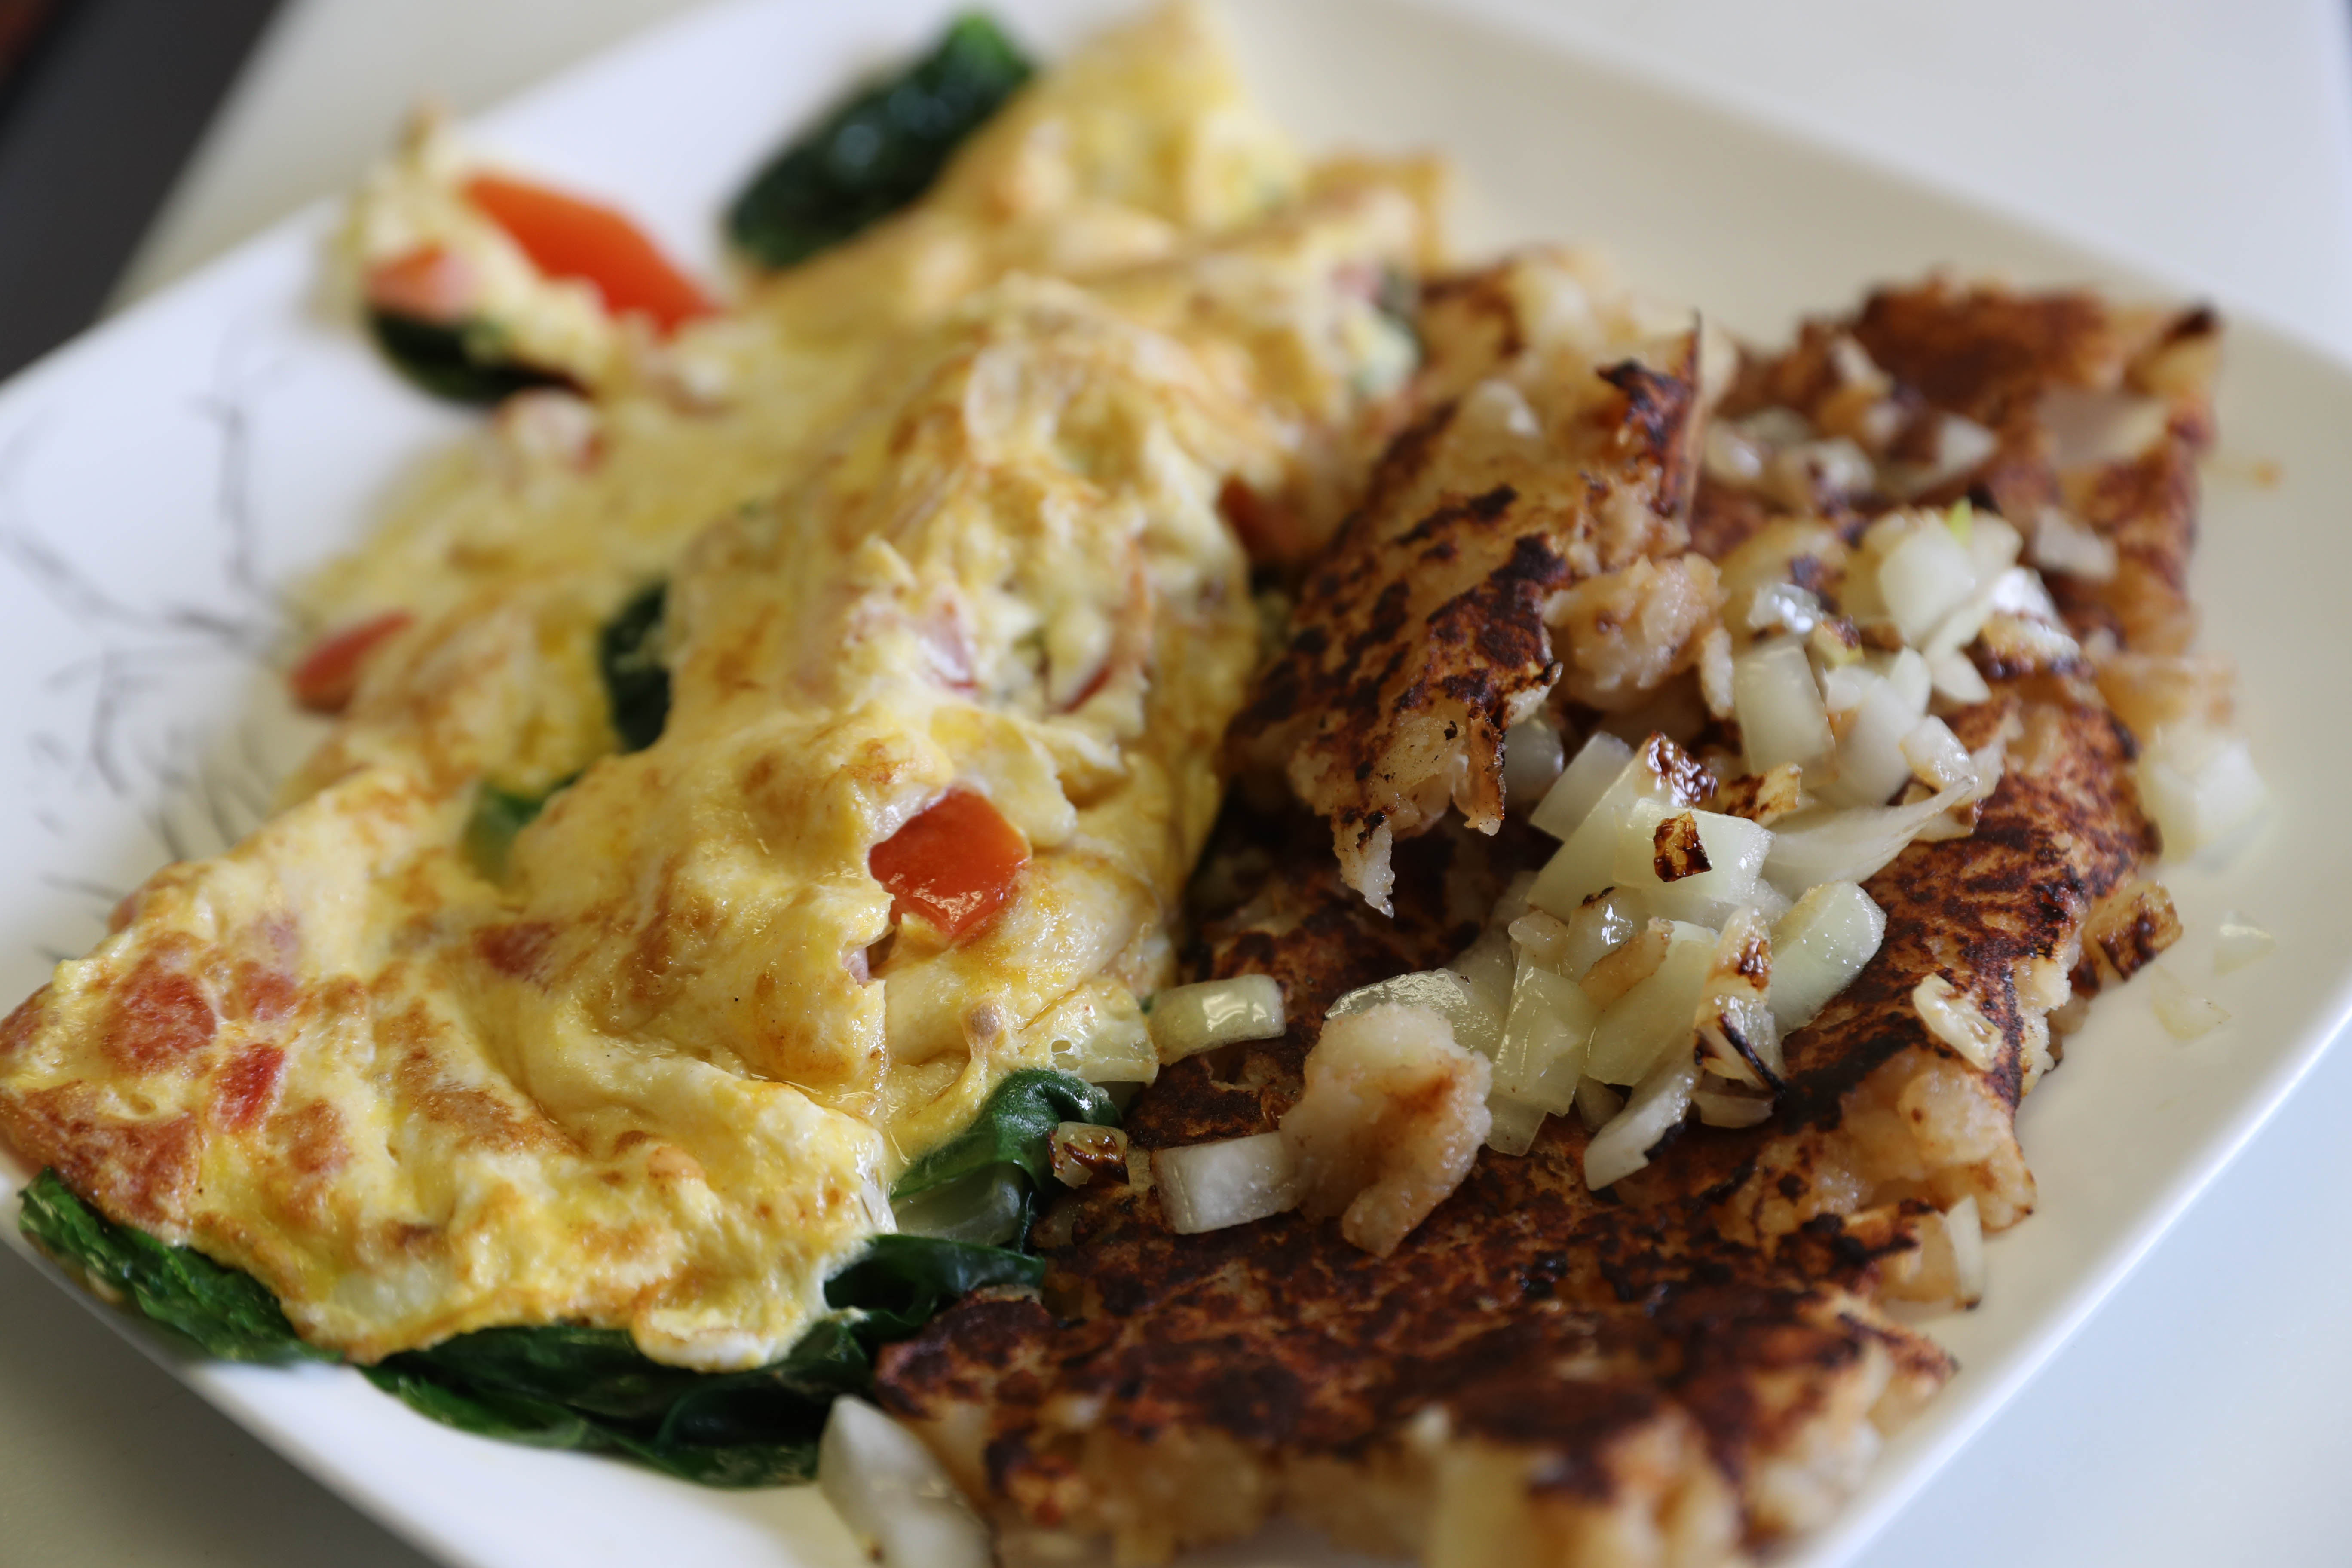 A custom omelet with tomato, onion, spinach and feta with home fries and onions at Rooser's Cafe.  (Sharon Cantillon/Buffalo News)